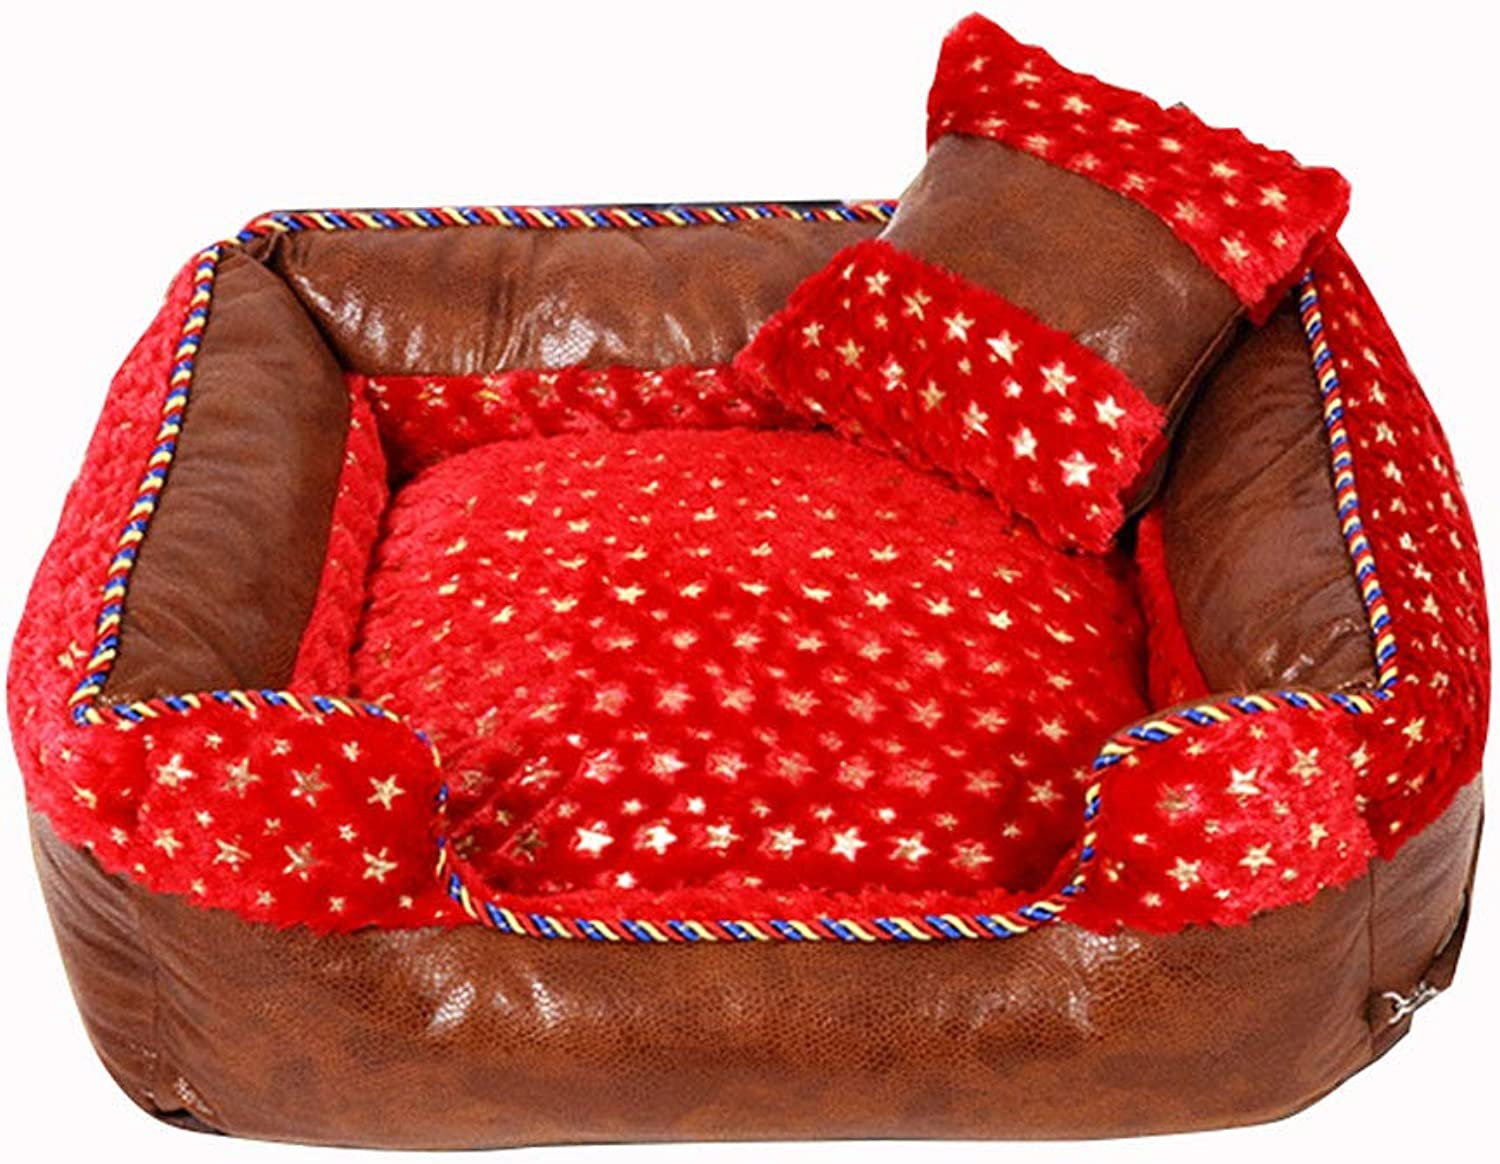 LITING Kennel Removable And Washable Teddy Dog Than Bear Small Dog golden Retriever Medium Large Dog Bed Pet Supplies Winter Warm (color   Red, Size   Xl 90  68  26cm)